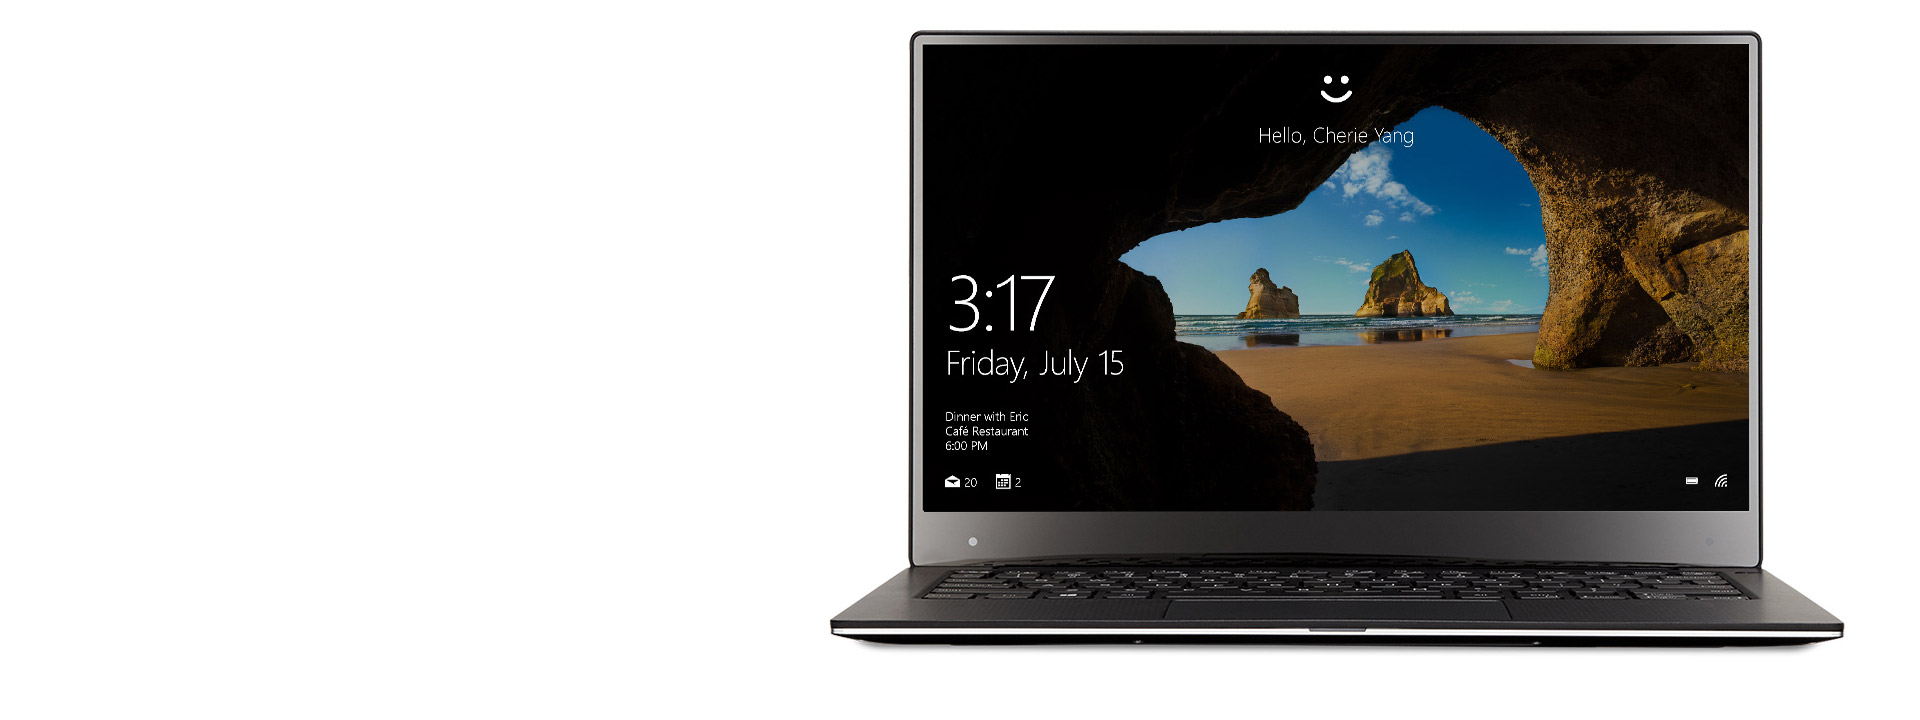 Dell XPS 13'te Windows Hello